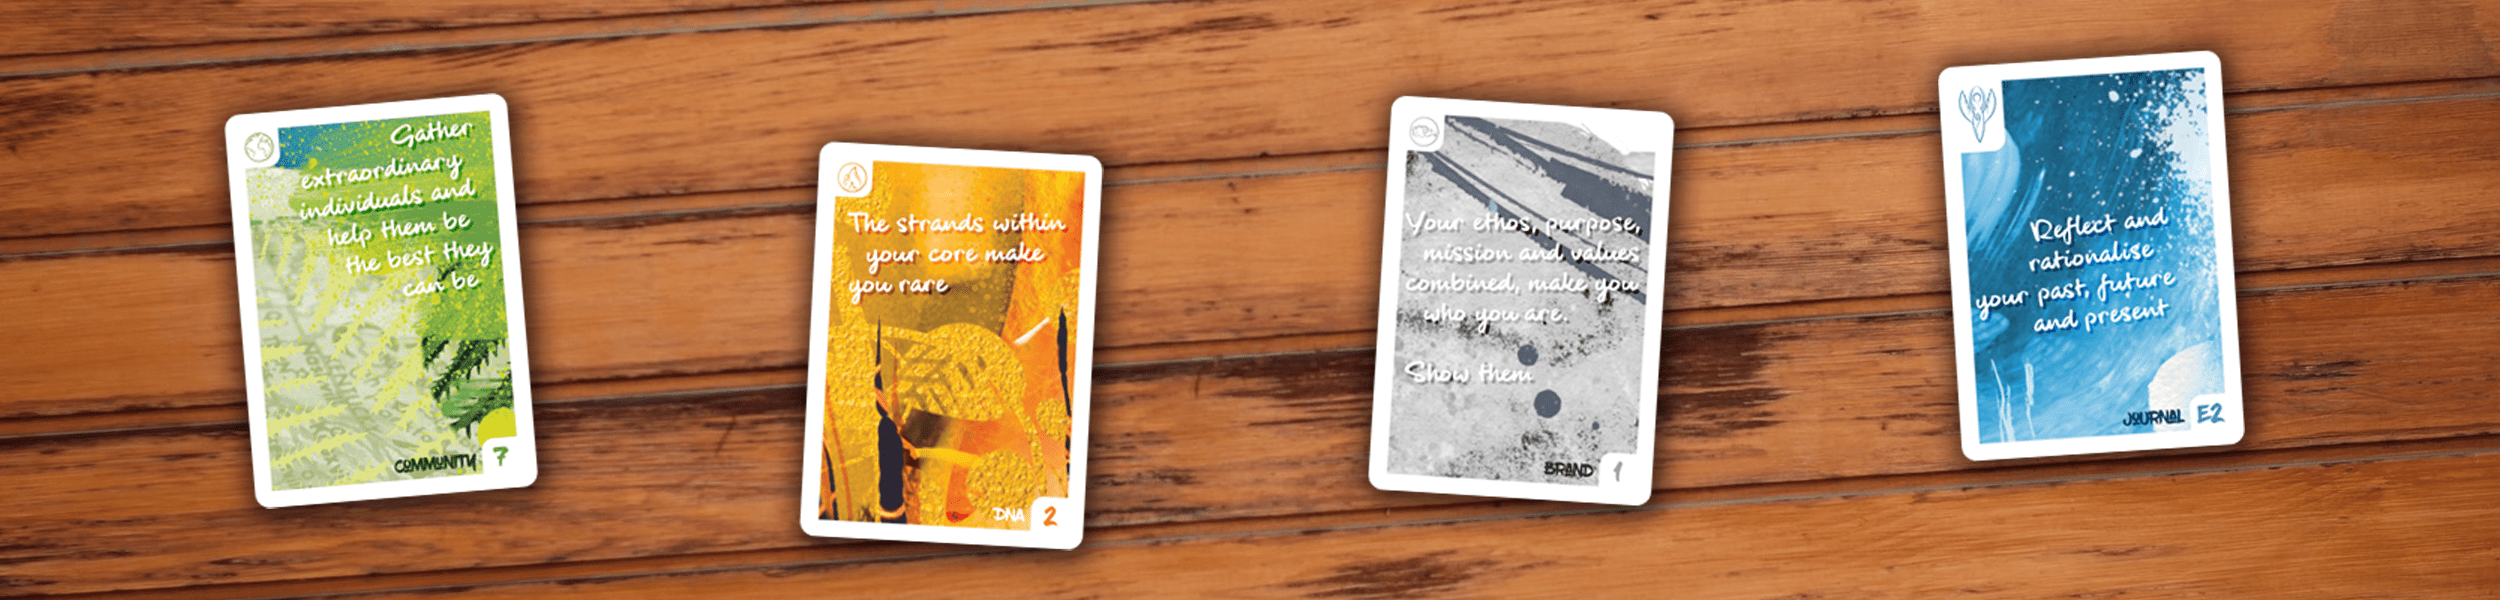 The Marketing Oracle Deck